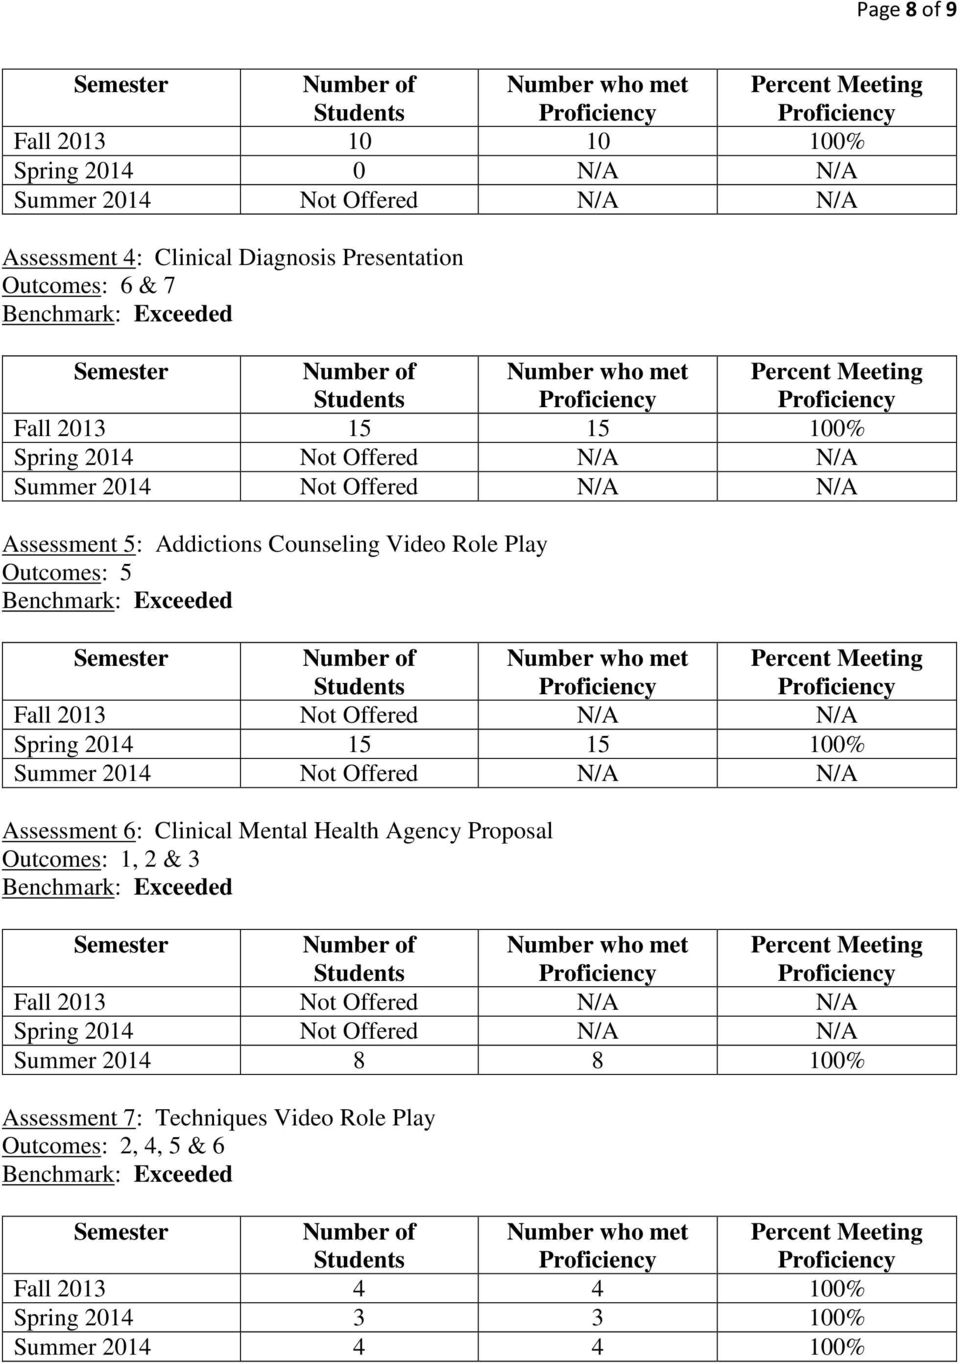 Spring 2014 15 15 100% Summer 2014 Not Offered N/A N/A Assessment 6: Clinical Mental Health Agency Proposal Outcomes: 1, 2 & 3 Fall 2013 Not Offered N/A N/A